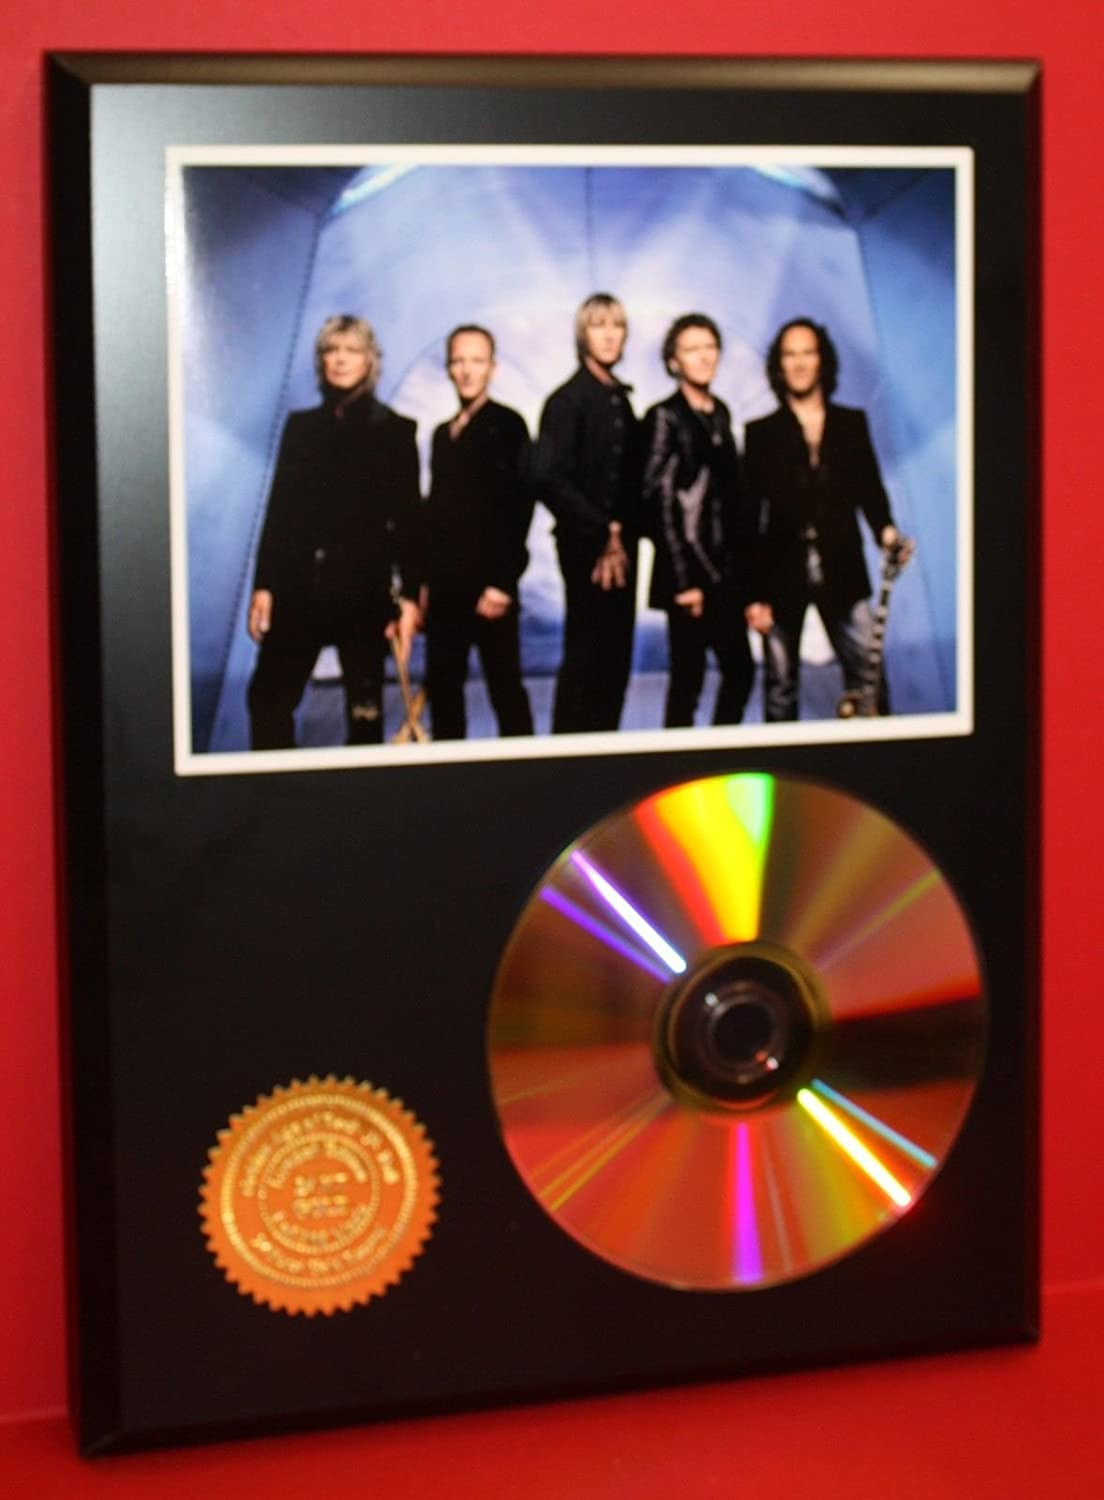 Def Leppard Limited 24KT Gold Cd Disc Collectible Award Quality Display